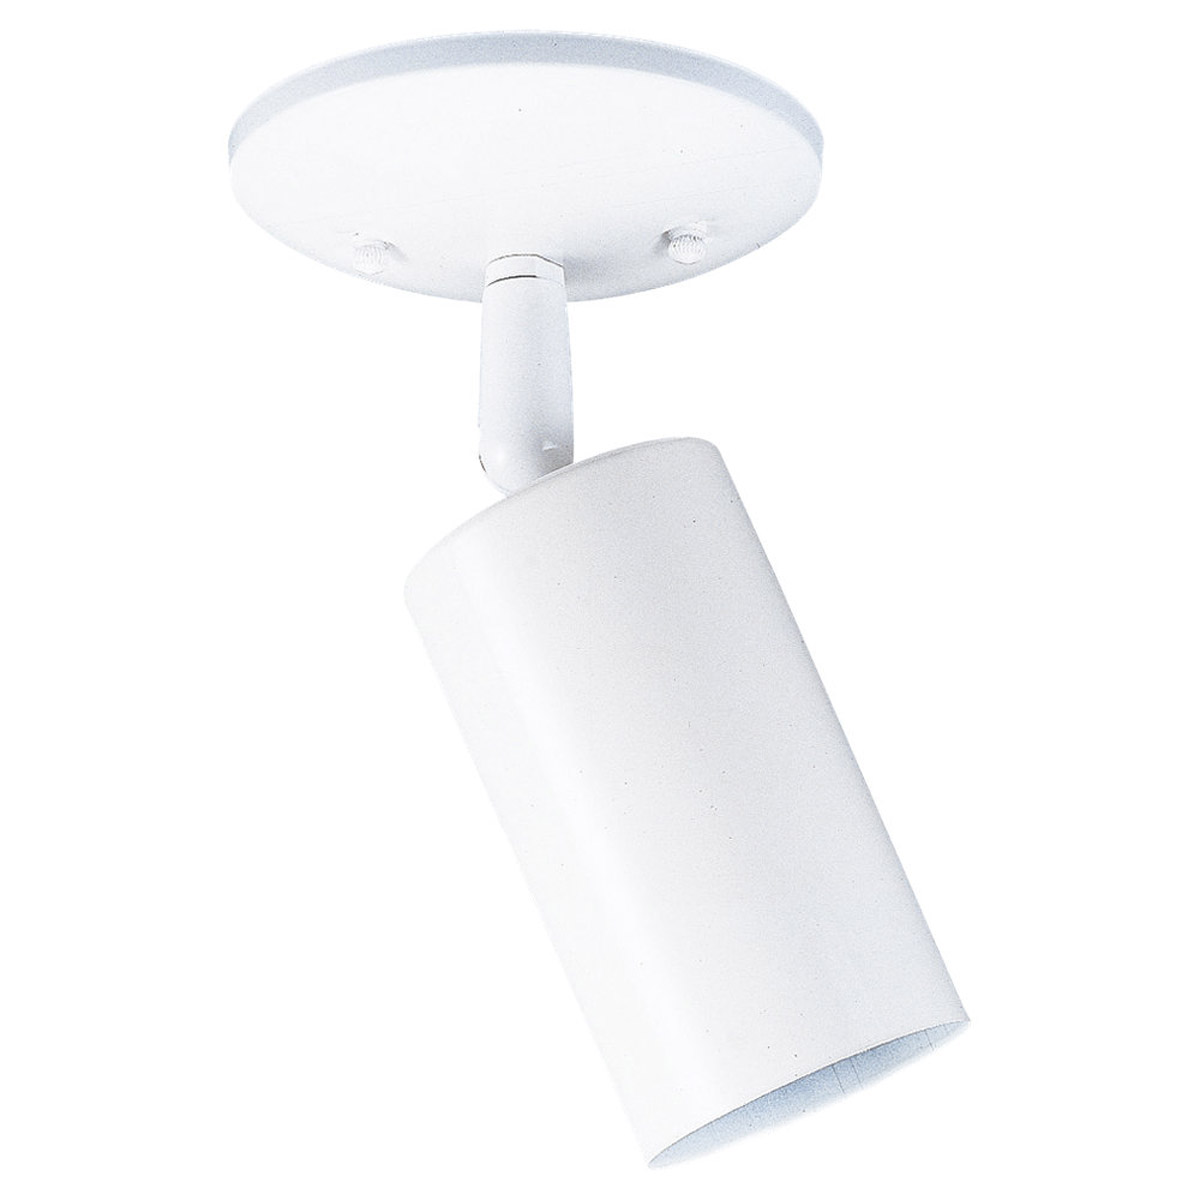 Sea Gull Lighting Bullets 1 Light Directional Ceiling Light in White 2011-15 photo